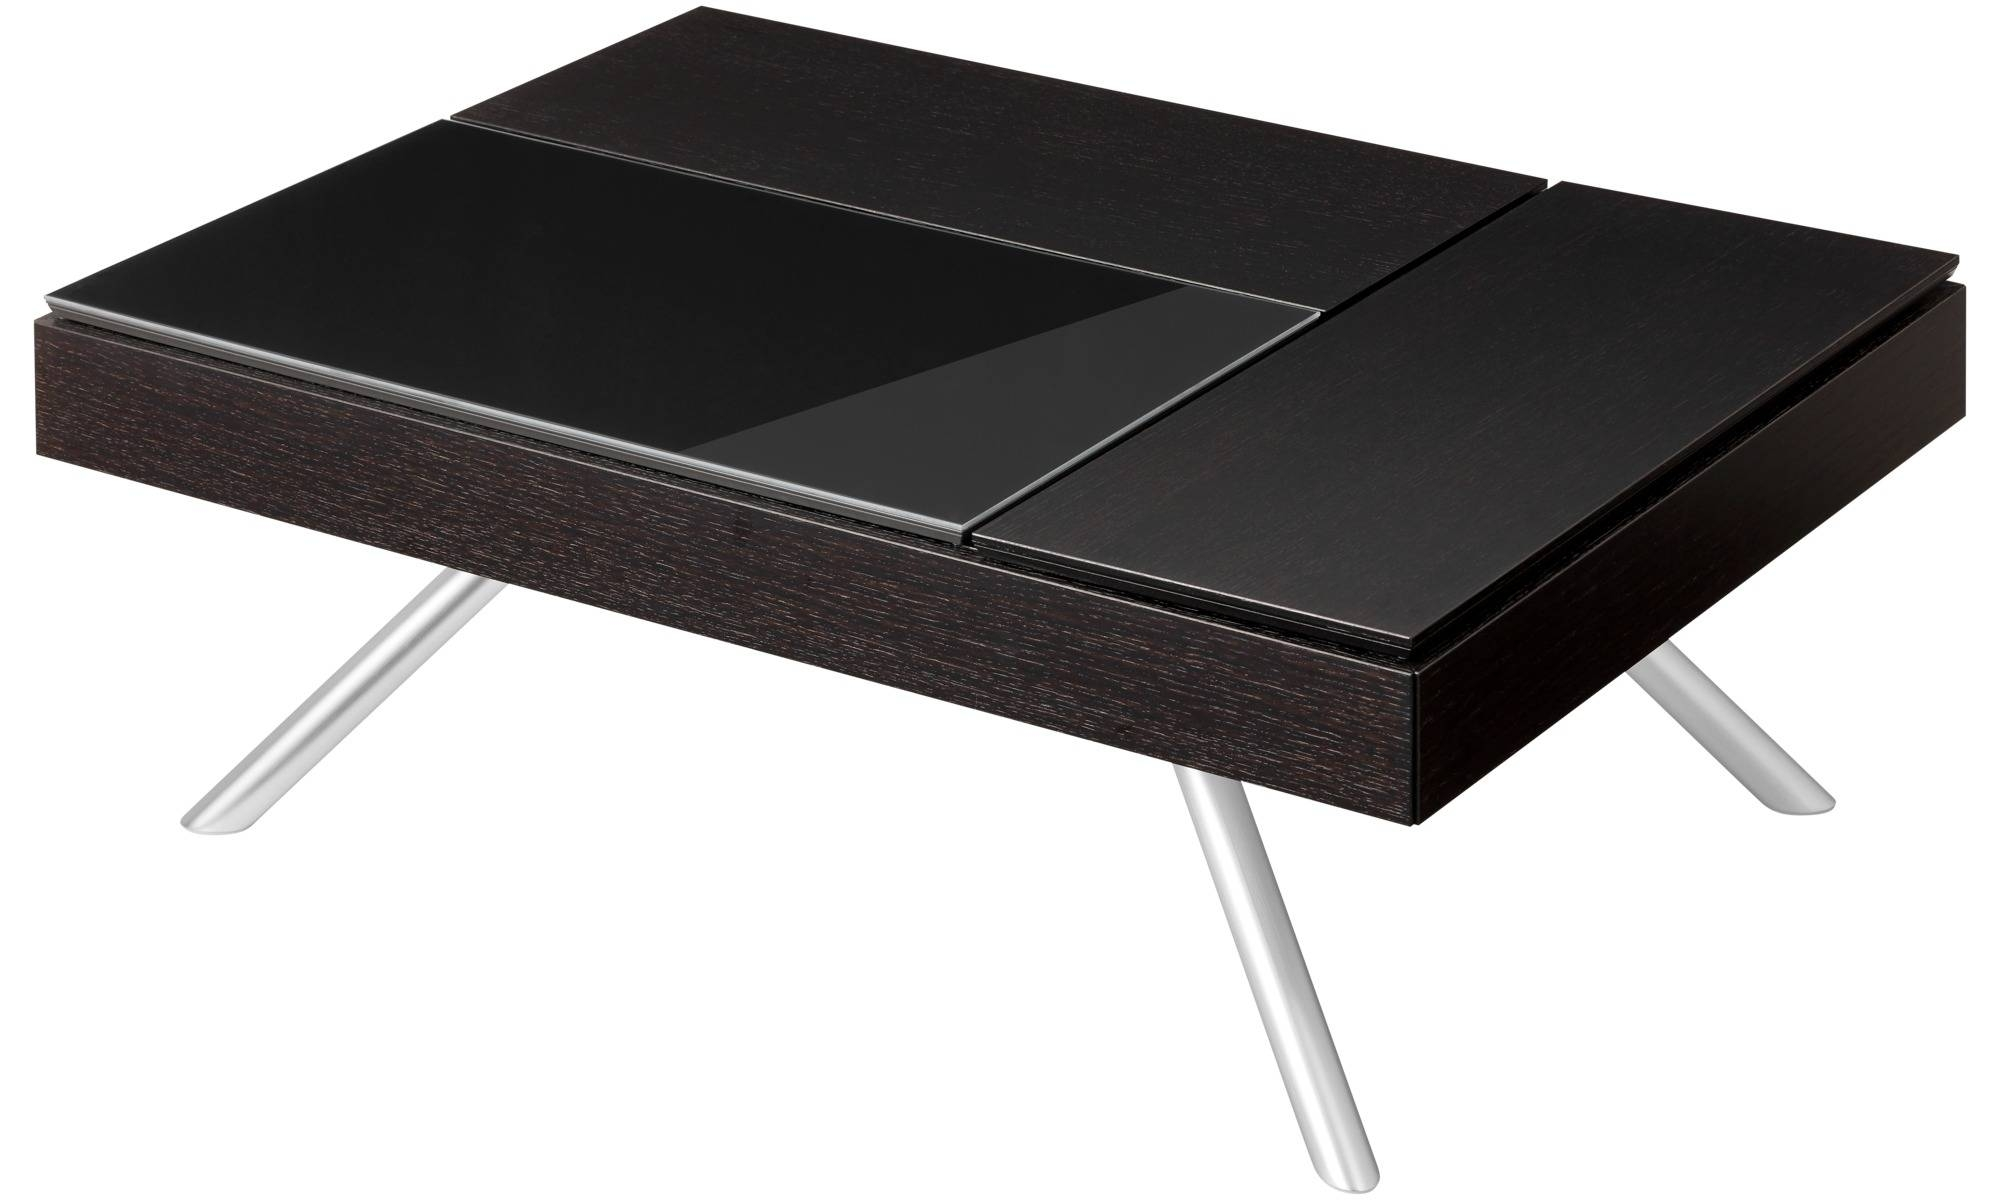 Coffee Tables - Chiva Functional Coffee Table With Storage - Boconcept pertaining to Square Black Coffee Tables (Image 13 of 30)